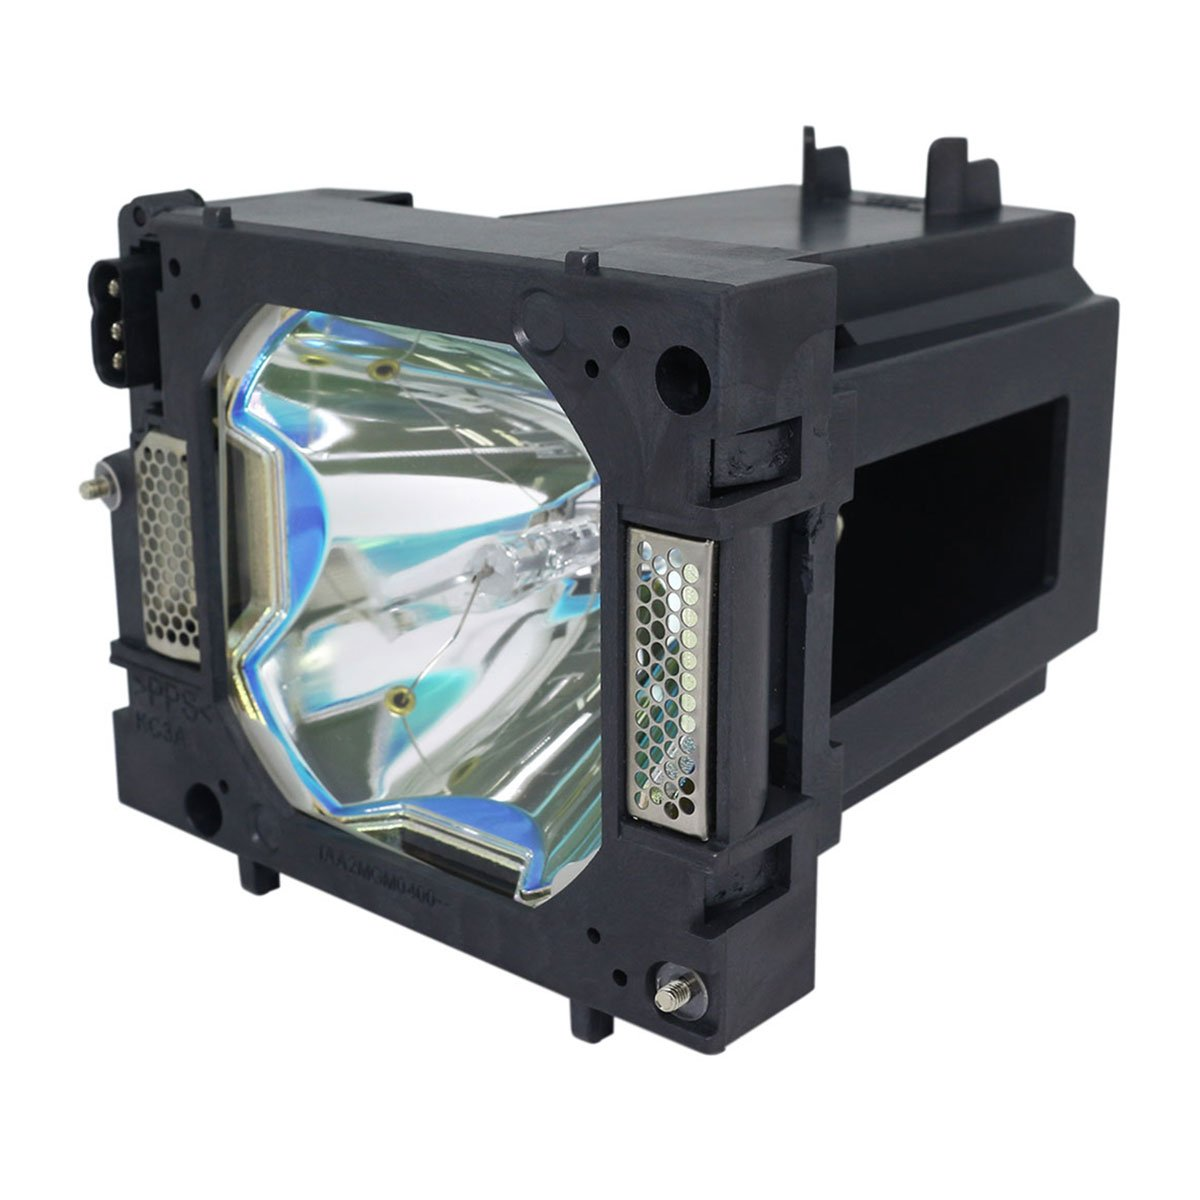 SpArc Platinum for Christie 003-120641-01 Projector Lamp with Enclosure